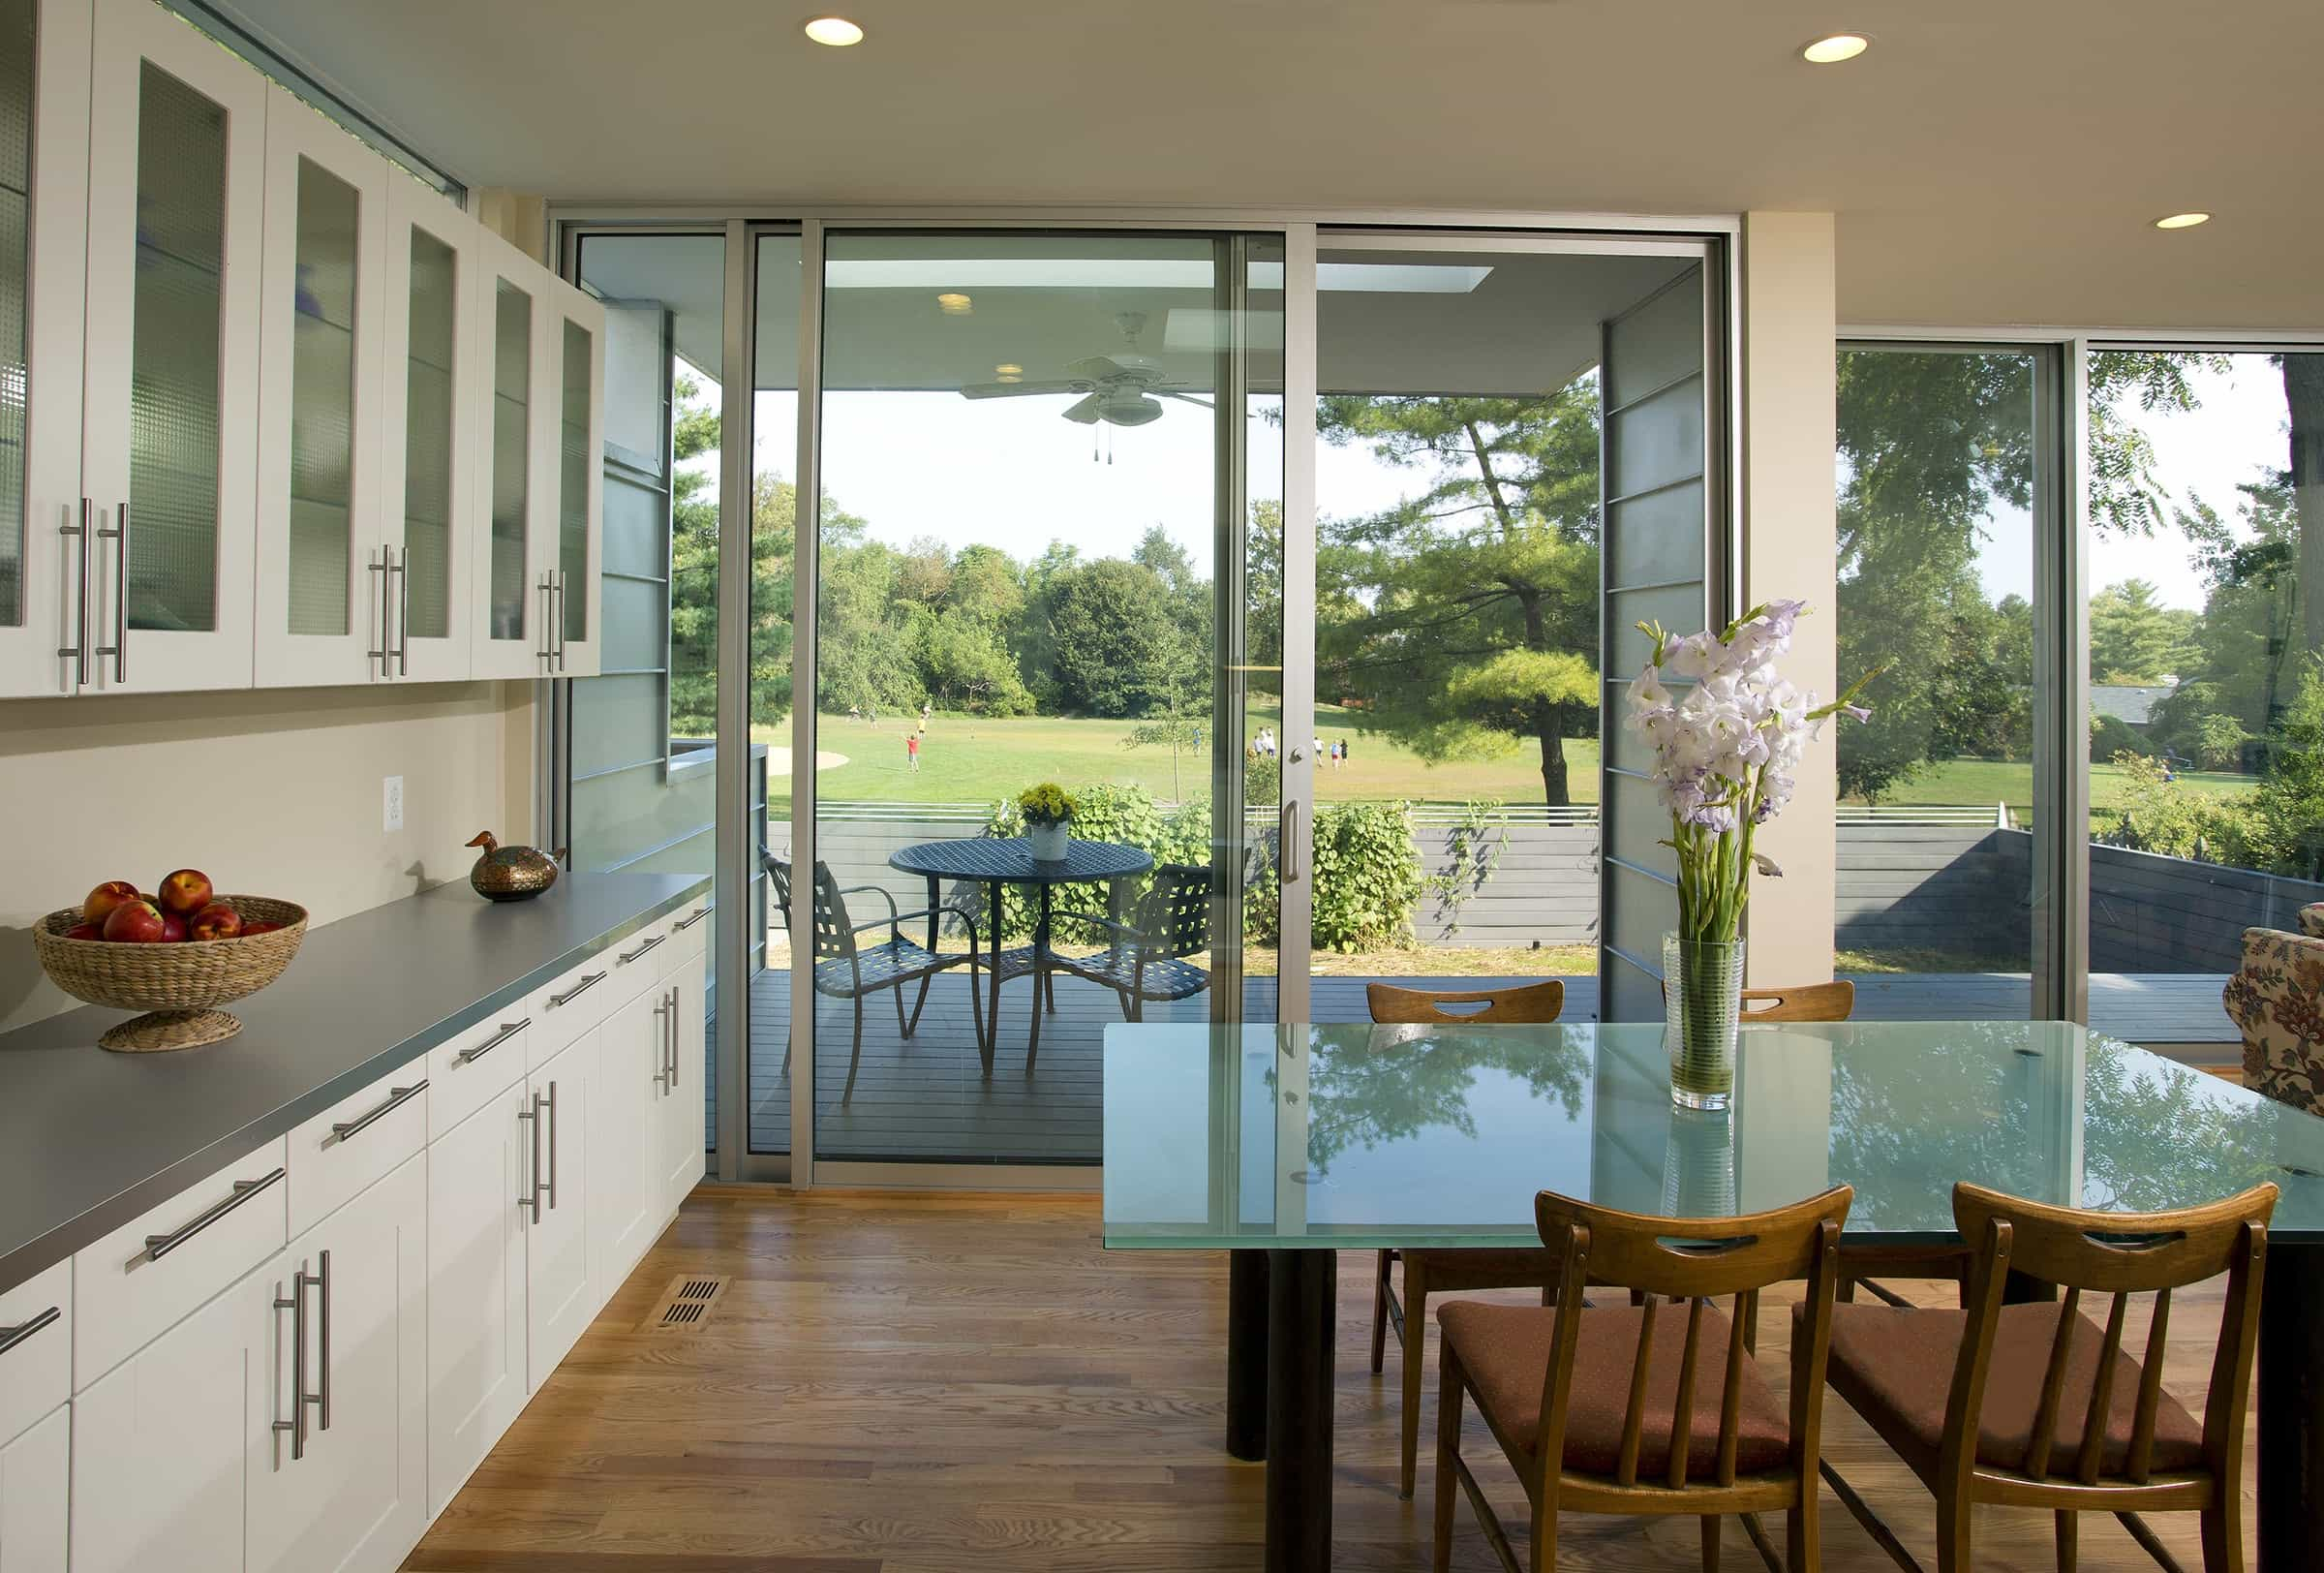 Featured Image of Cozy Cape Cod Dining Area With Sliding Doors